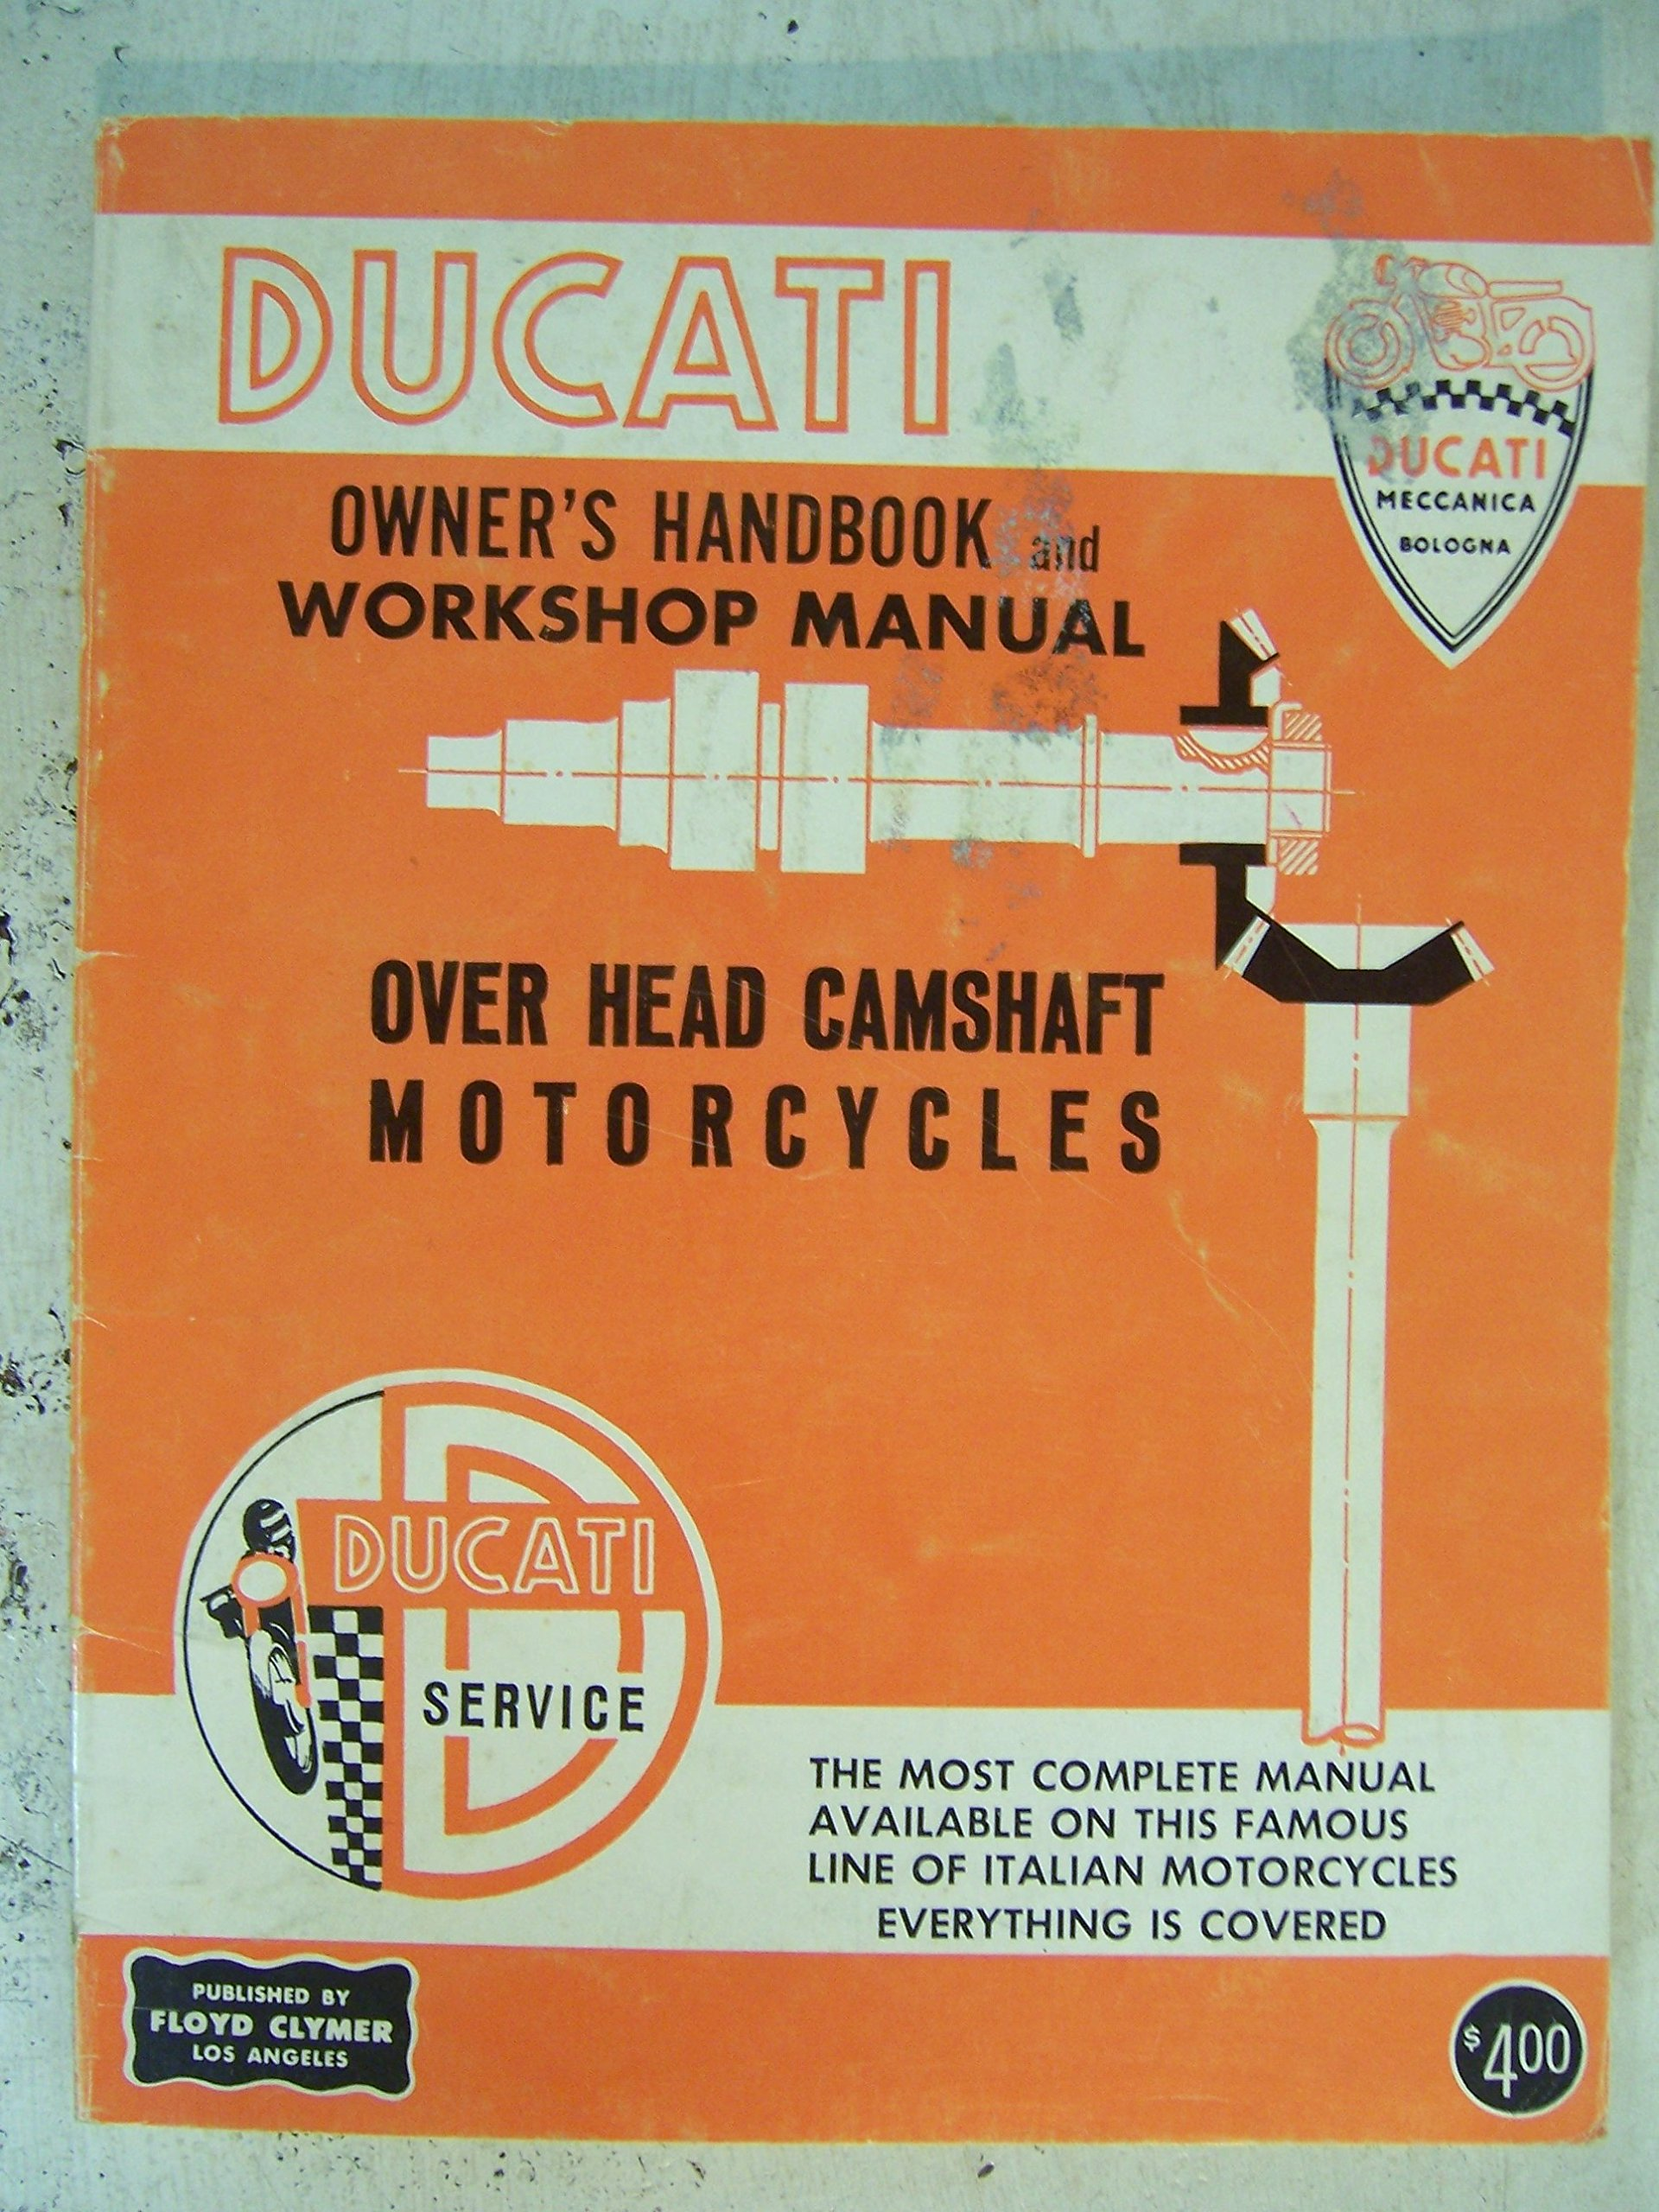 Ducati Owner's Handbook and Workshop Manual: Over Head Camshaft  Motorcycles: No author listed: Amazon.com: Books